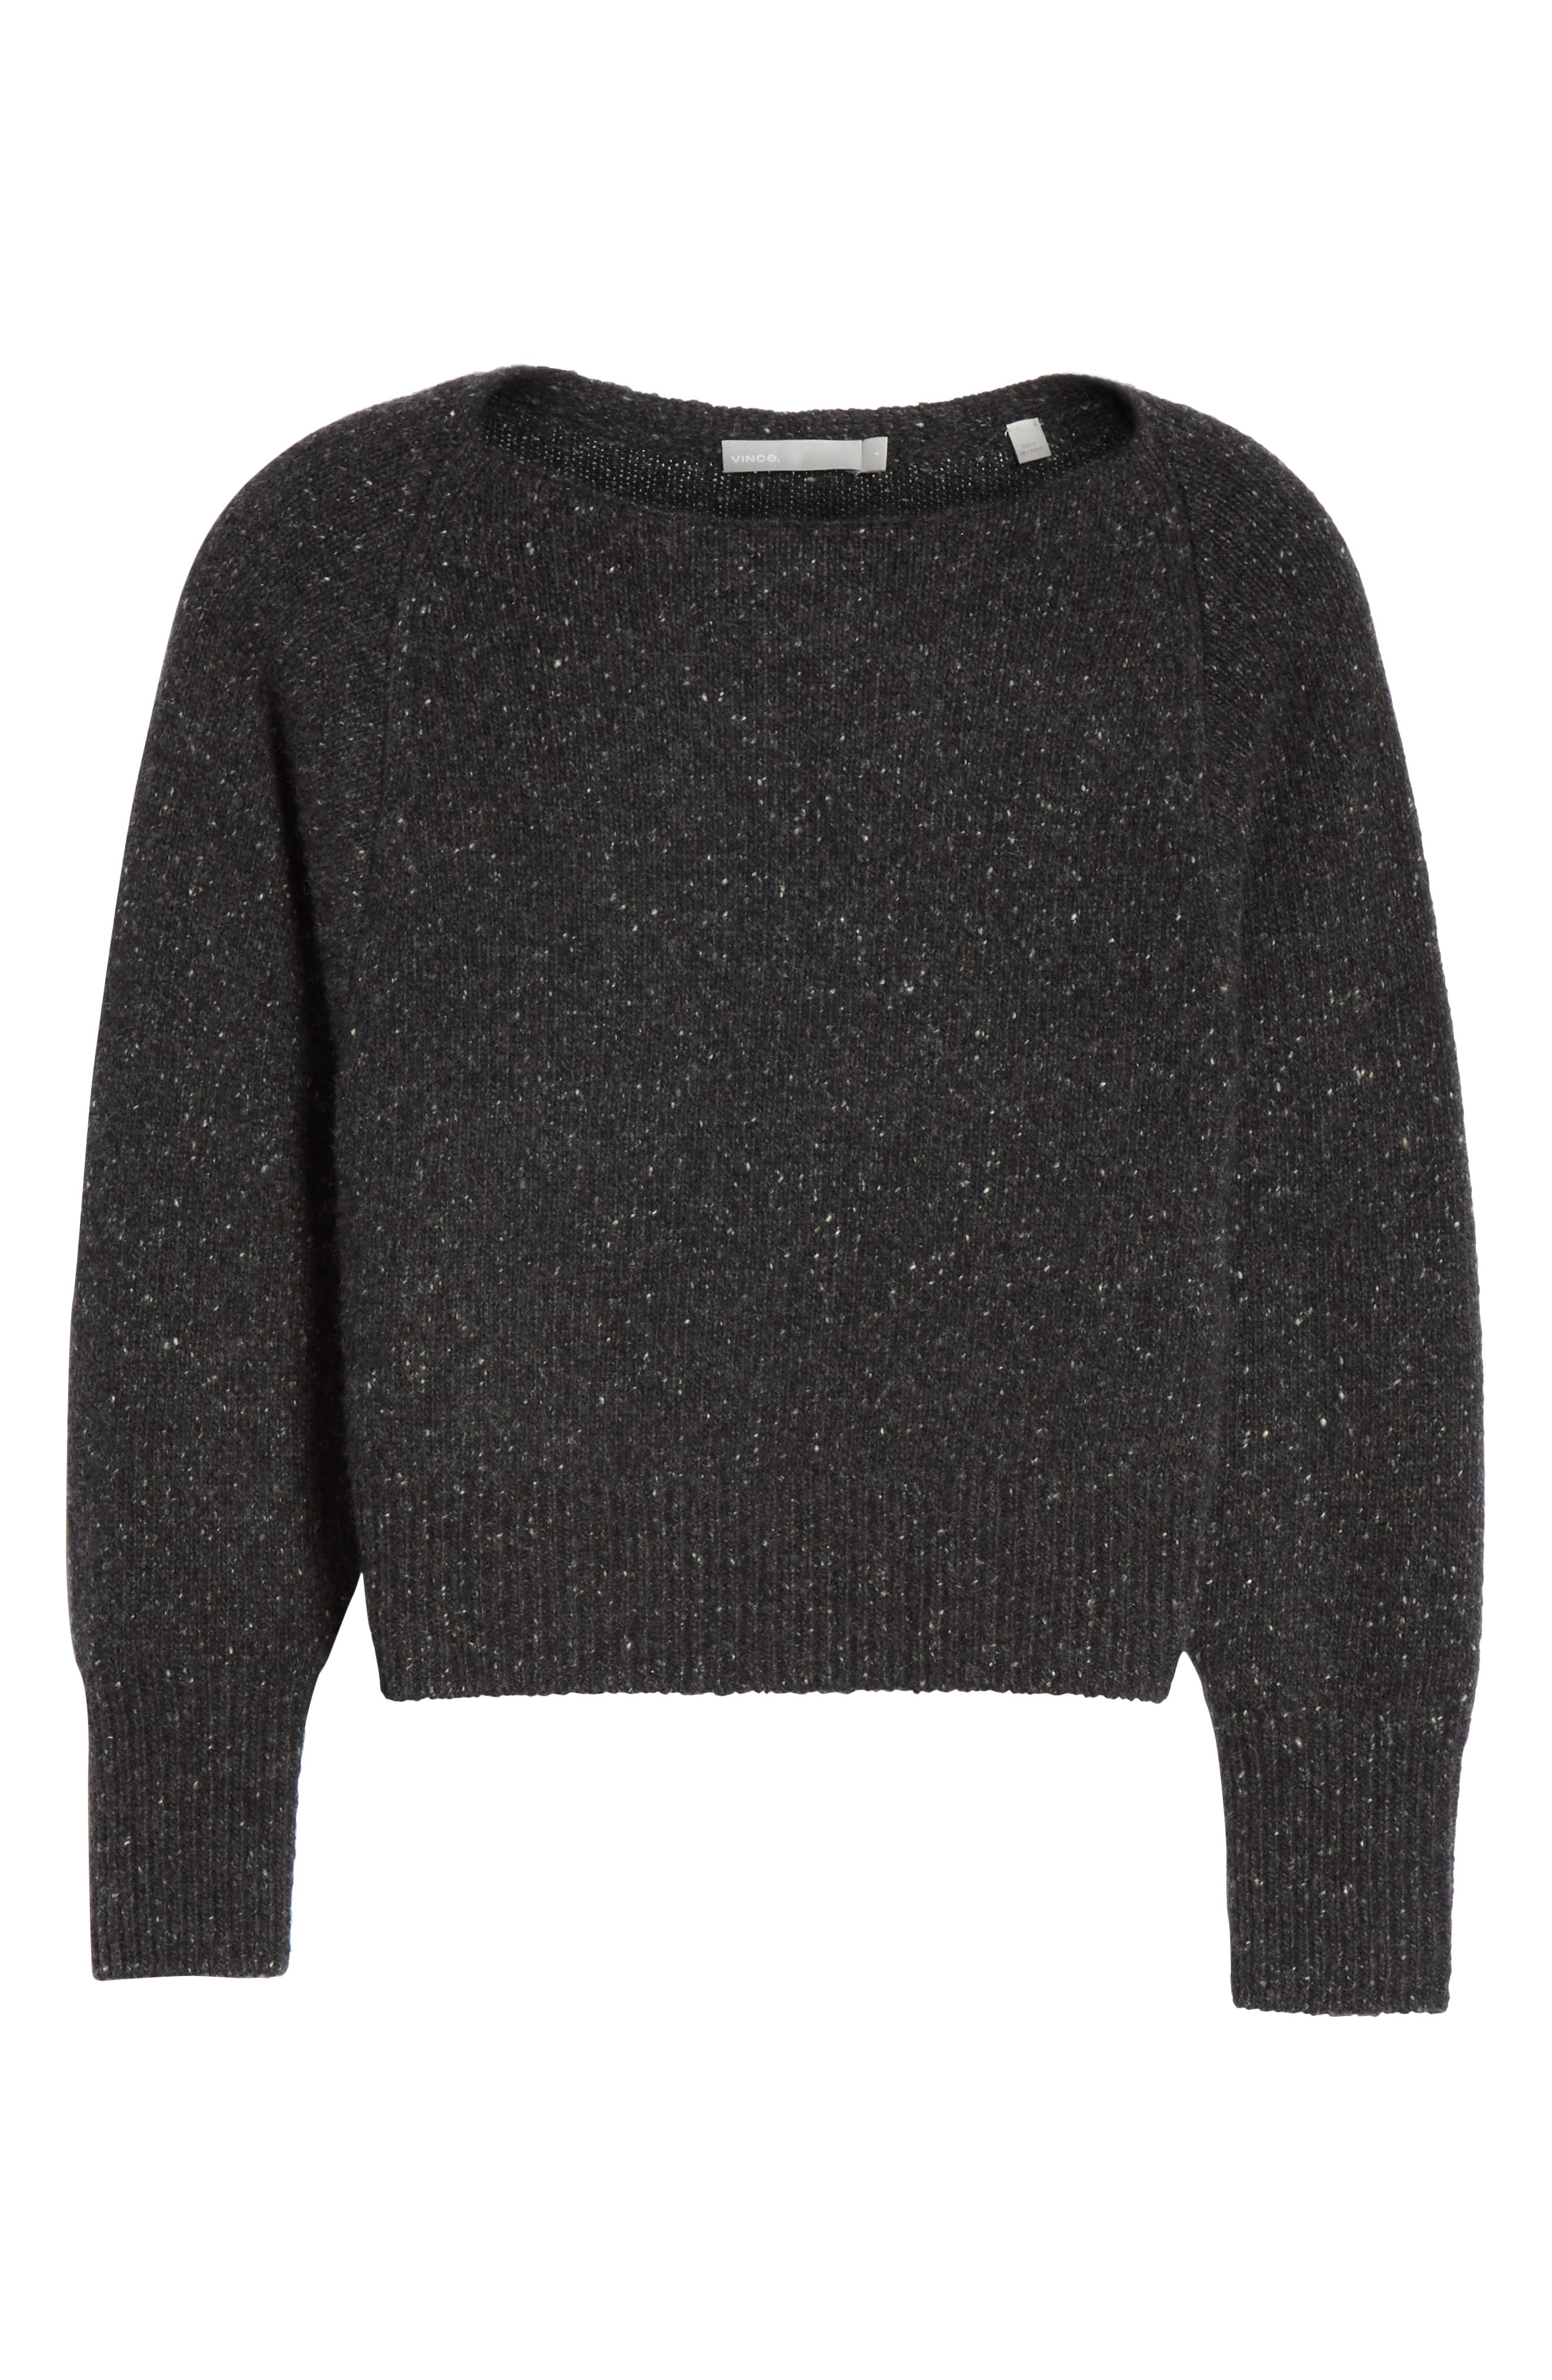 Cashmere Boatneck Sweater,                             Alternate thumbnail 6, color,                             CHARCOAL